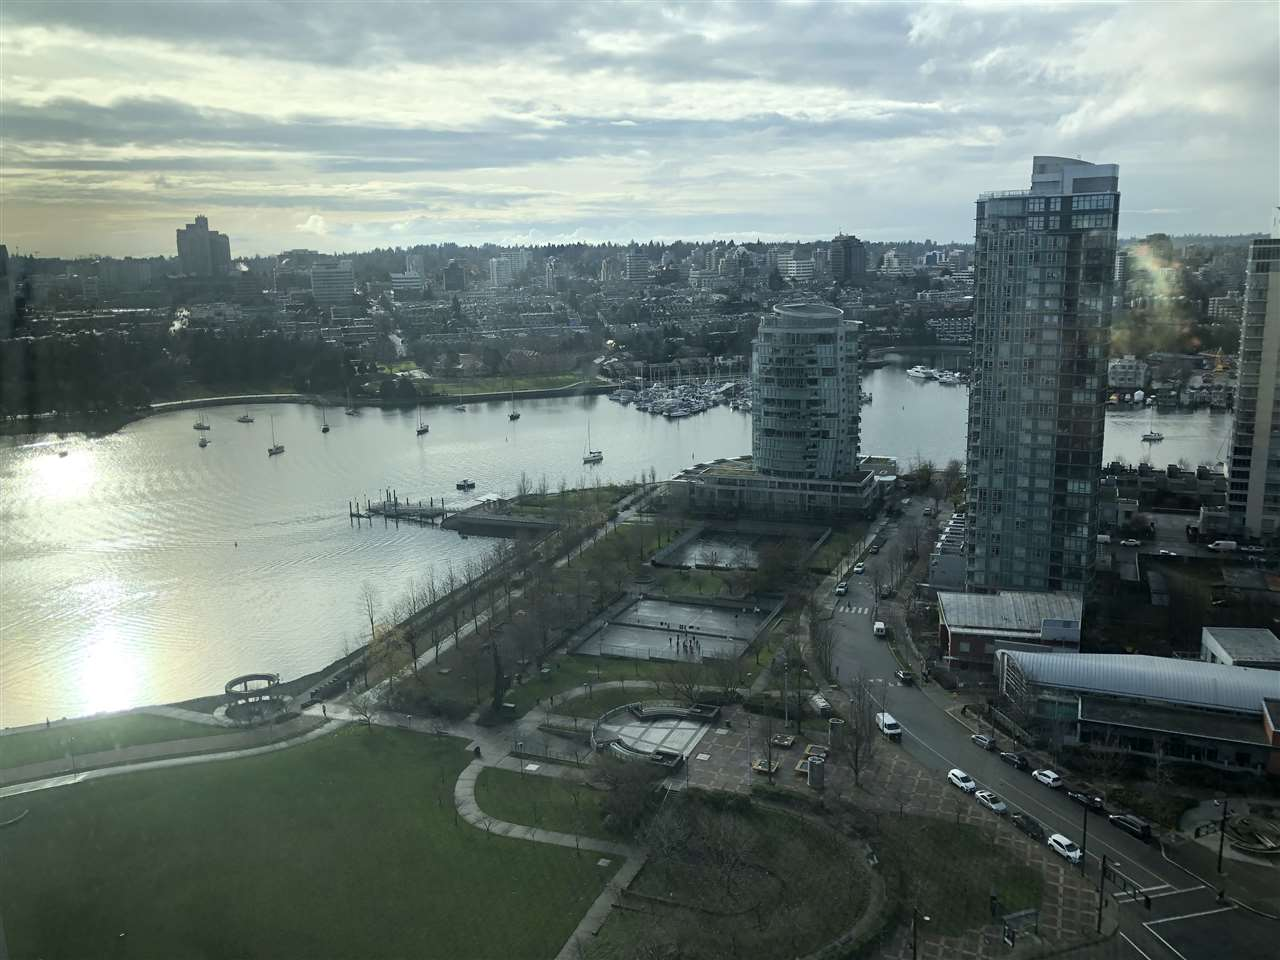 3001 388 DRAKE STREET - Yaletown Apartment/Condo for sale, 3 Bedrooms (R2422644) - #3